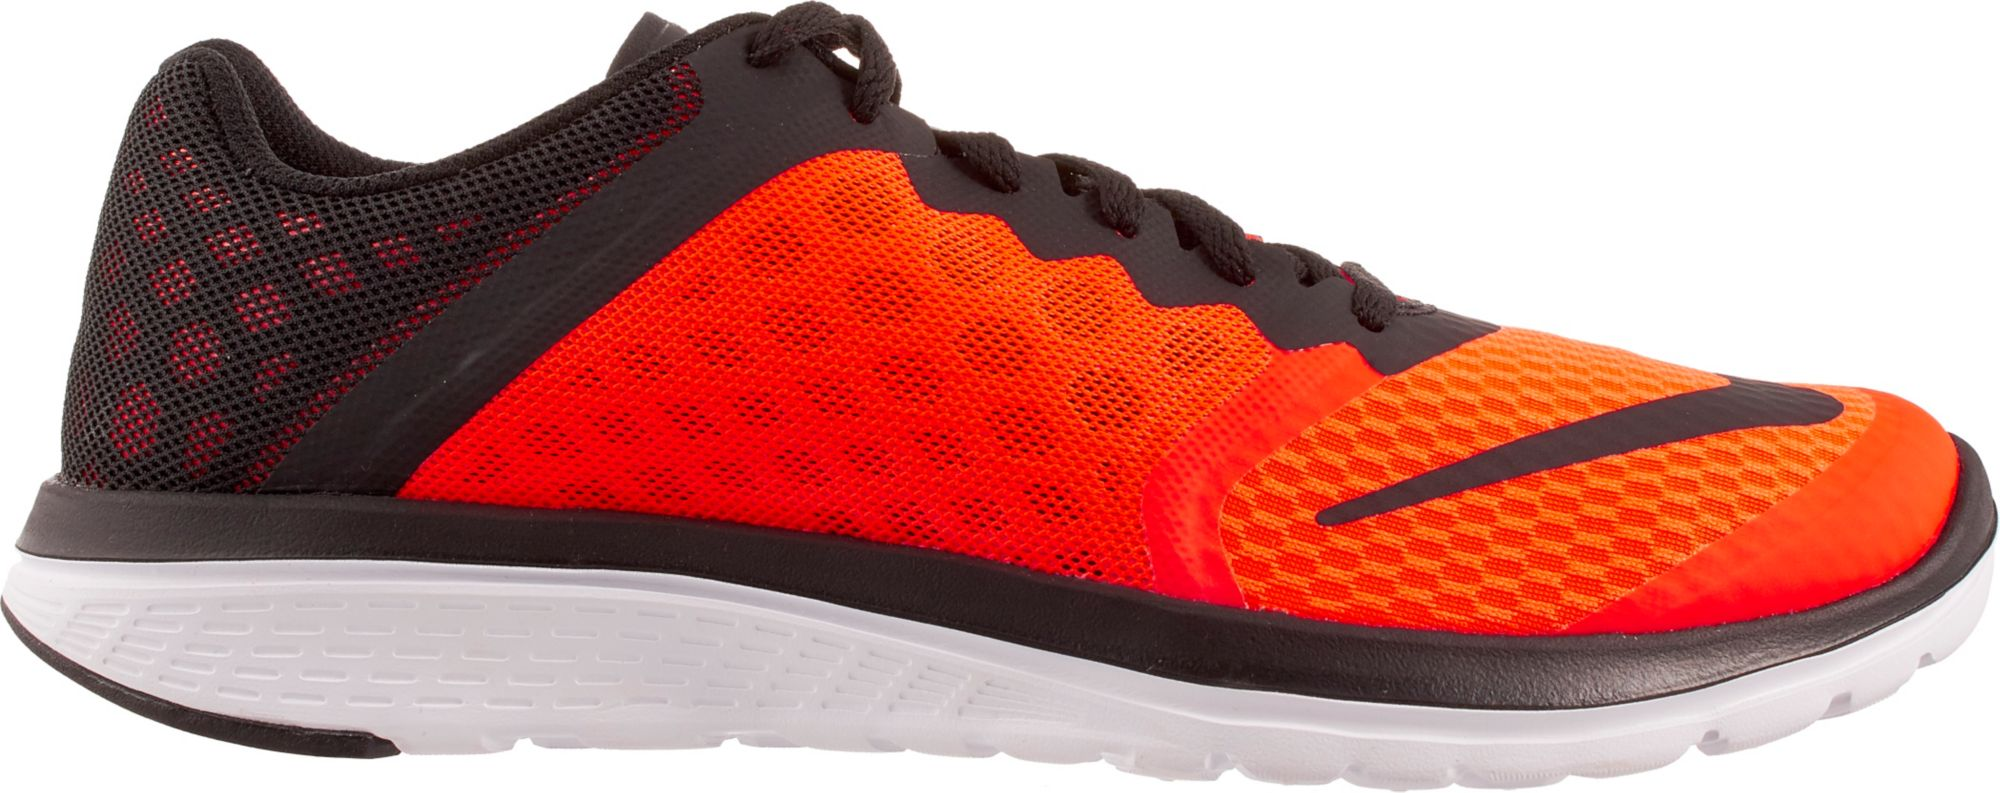 new concept 3ada3 25ebb Nike Mens FS Lite Run 3 Running Shoes DICKS Sporting Goods 80%OFF. With a  new ...